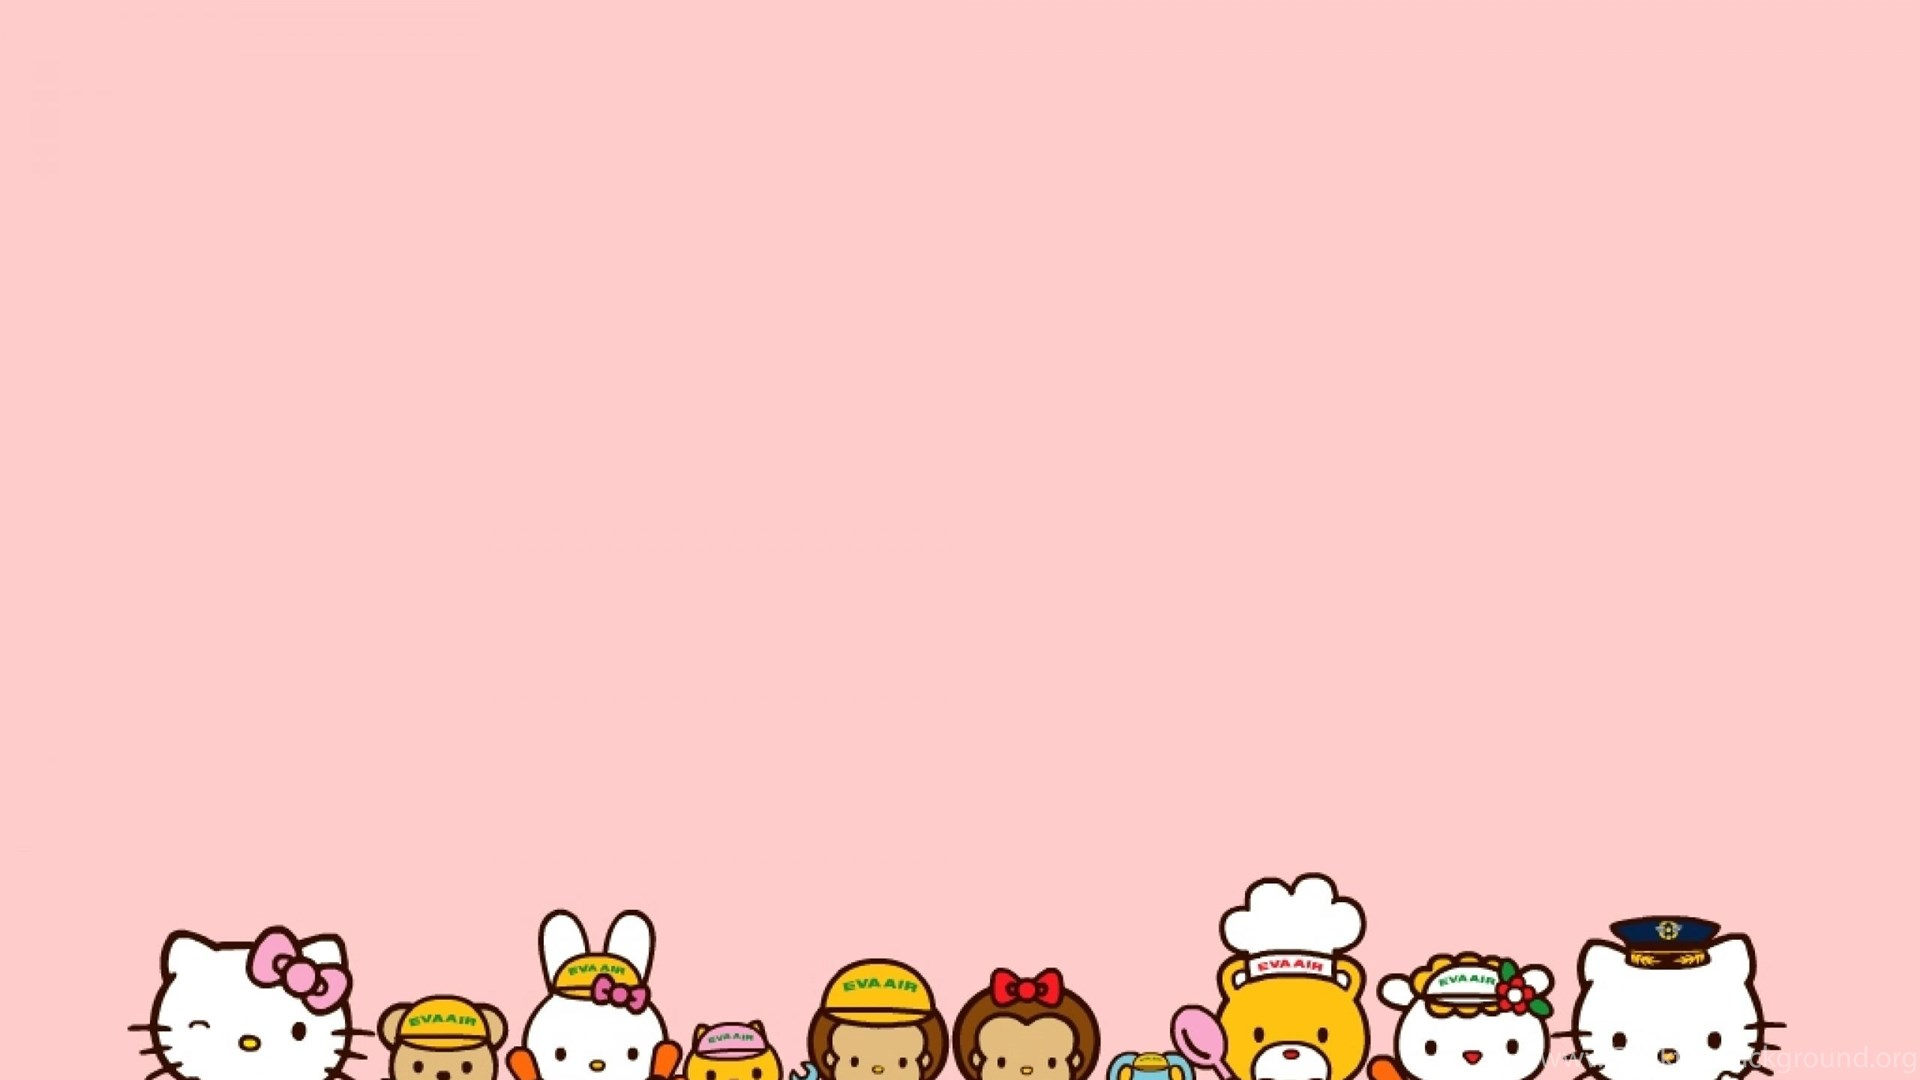 Cute Hello Kitty Wallpaper Android Sanrio Wallpapers Hd Backgrounds Download Iphones